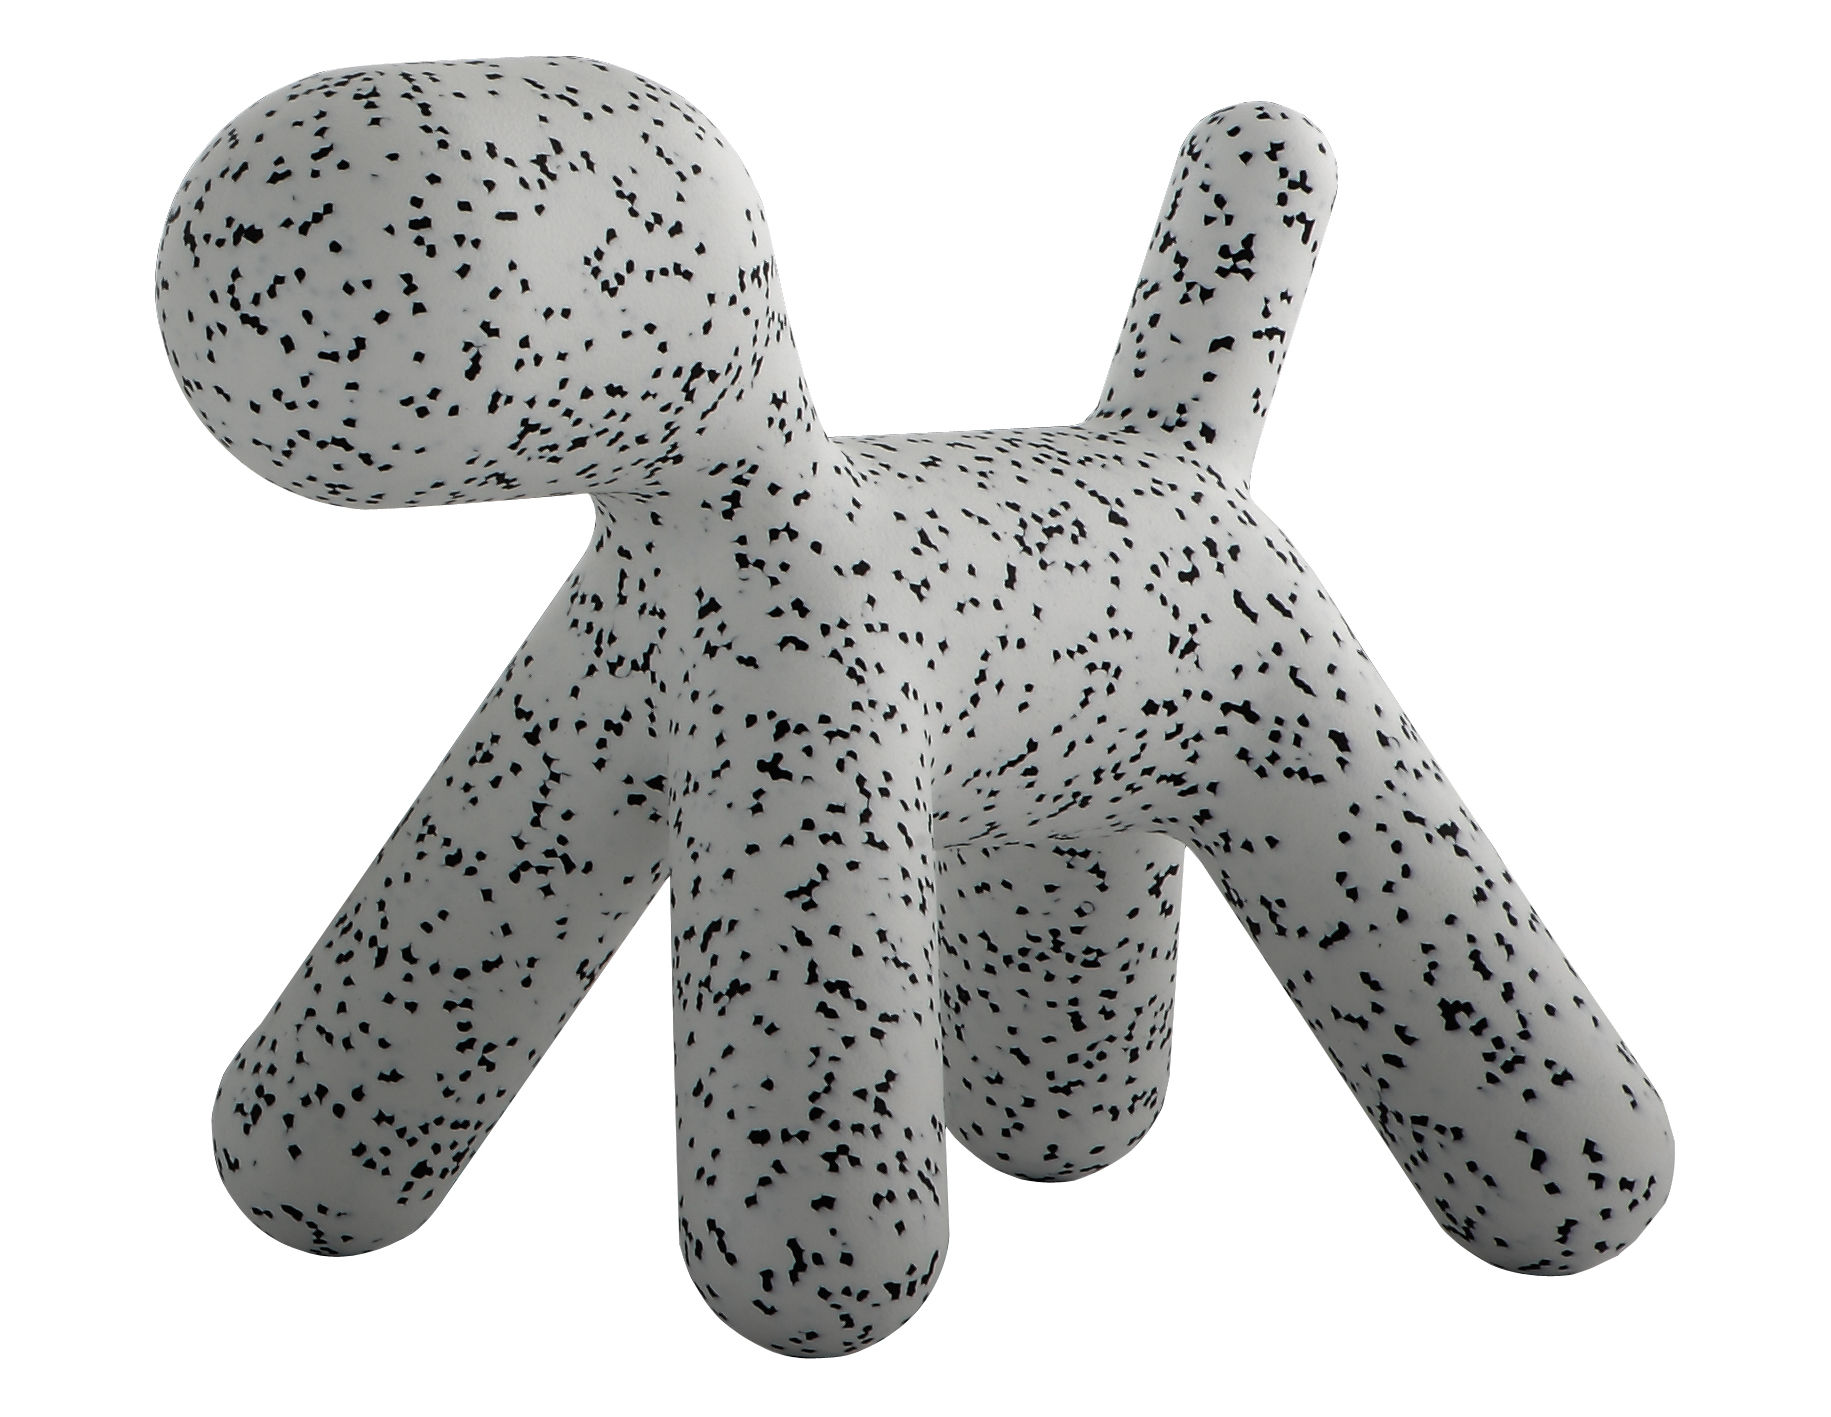 Furniture - Kids Furniture - Puppy Medium Children's chair - / Medium - L 56 cm by Magis Collection Me Too - White / Black mottled - roto-moulded polyhene